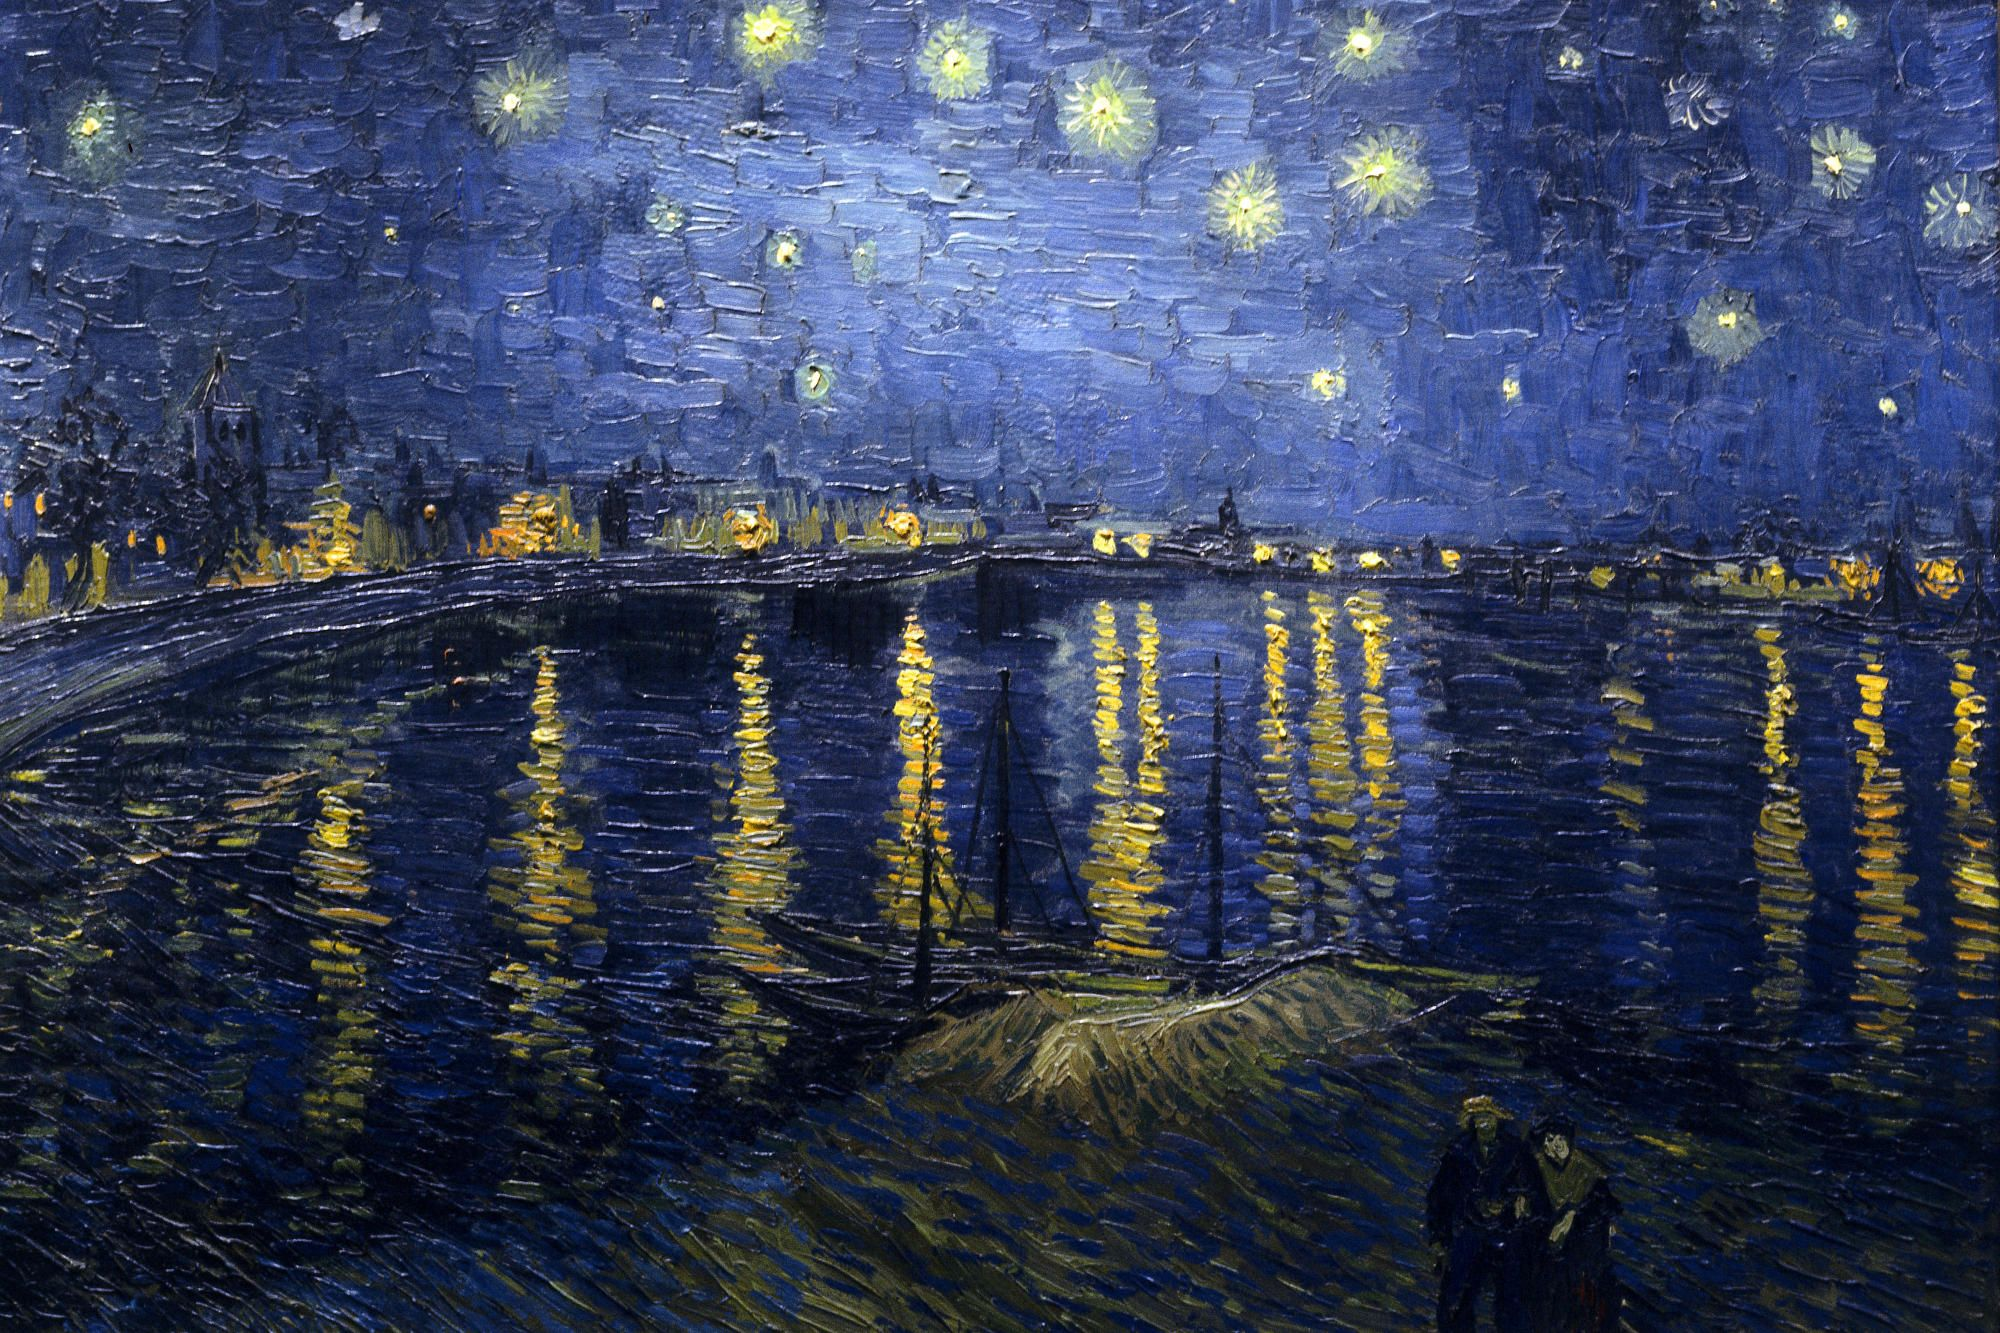 Vincent Willem van Gogh (30 March 1853 – 29 July 1890) was a Post-Impressionist painter of Dutch origin   Starry Night Over The Rhone